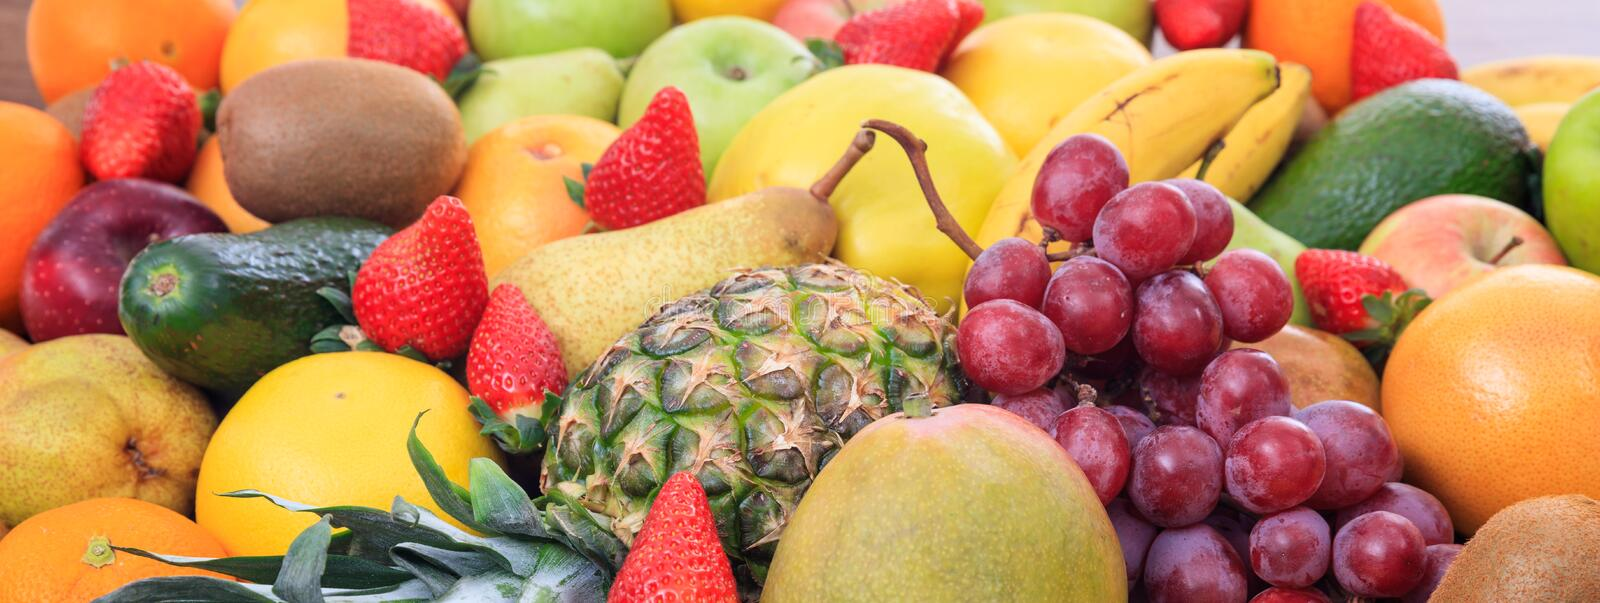 Variety of fruits background. A variety of colorful fresh fruits background royalty free stock photos